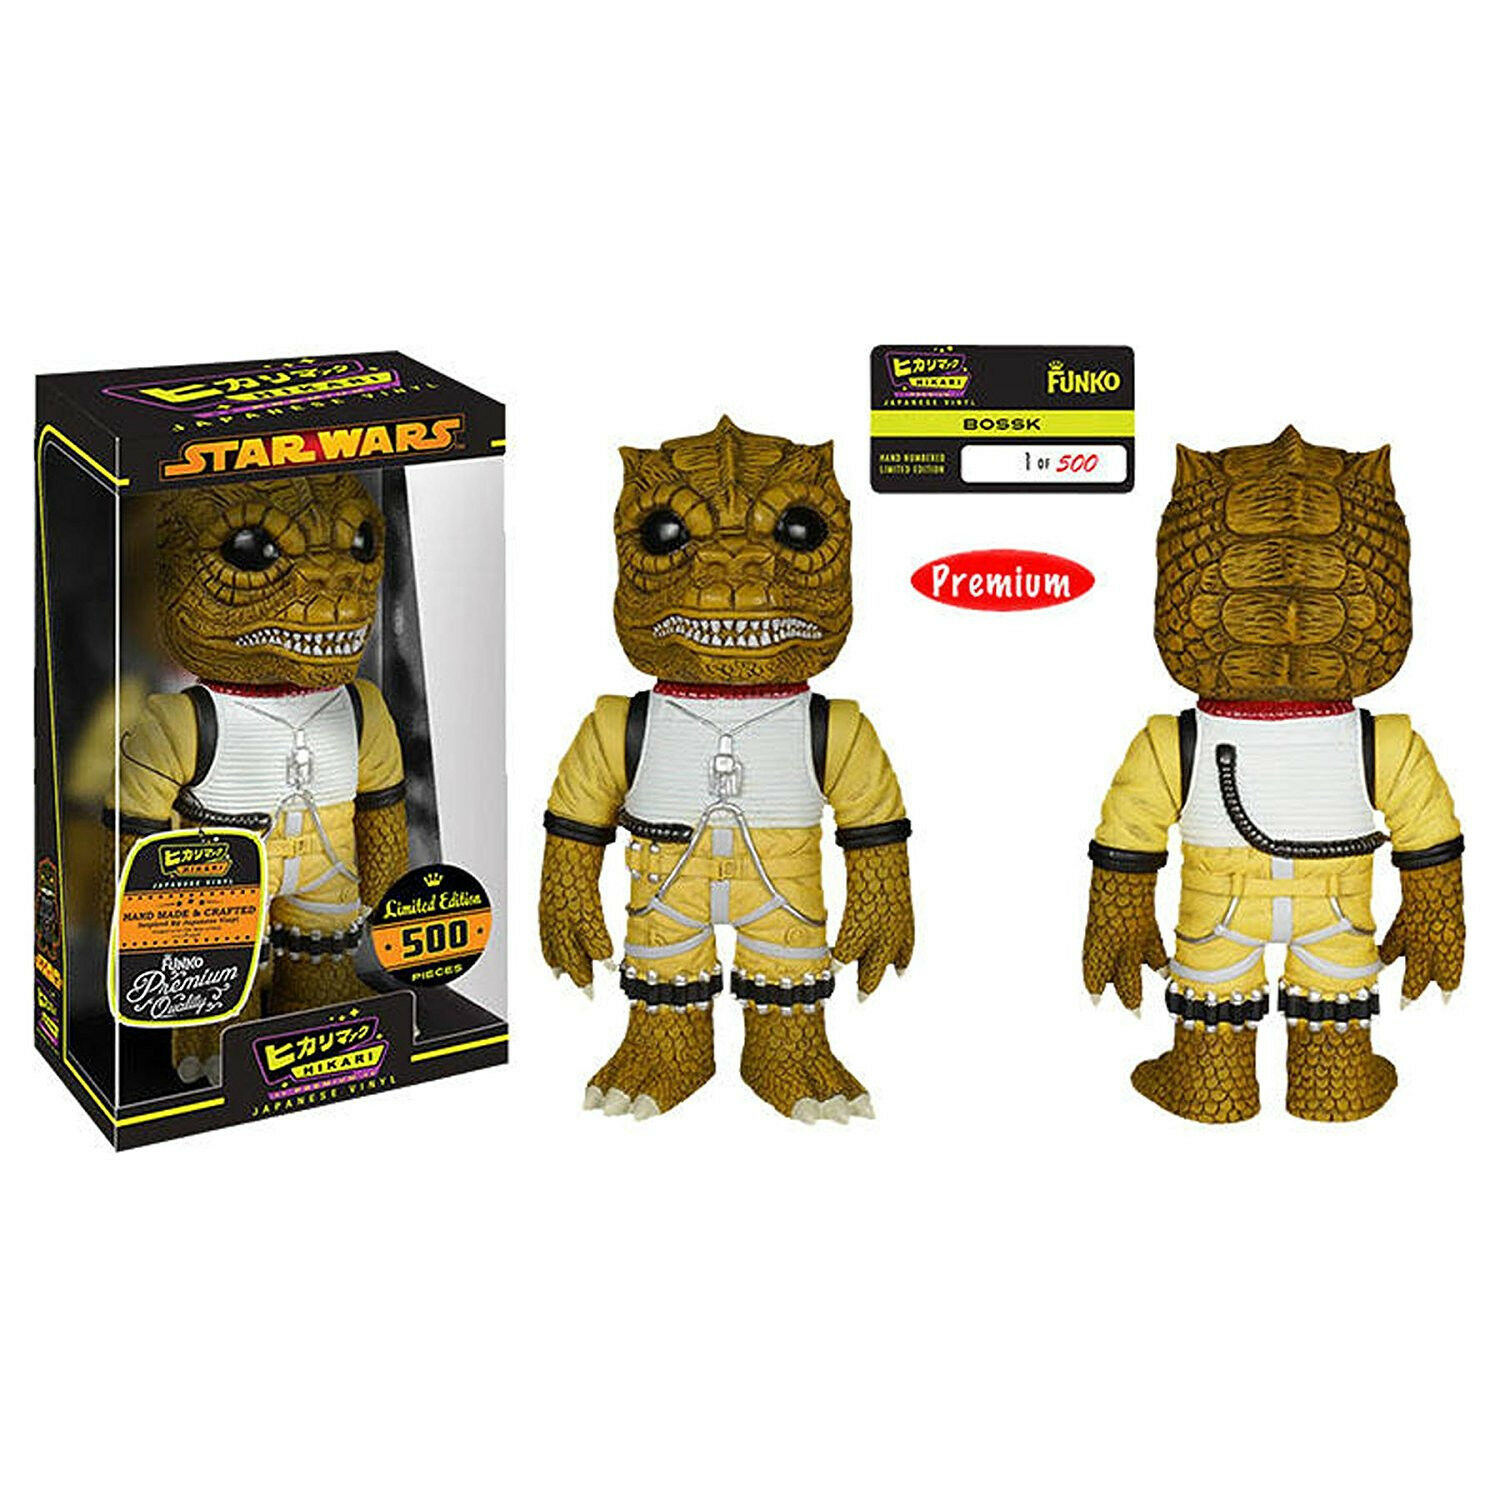 Hikari  STAR Wars  metallico BossK Ltd EDT